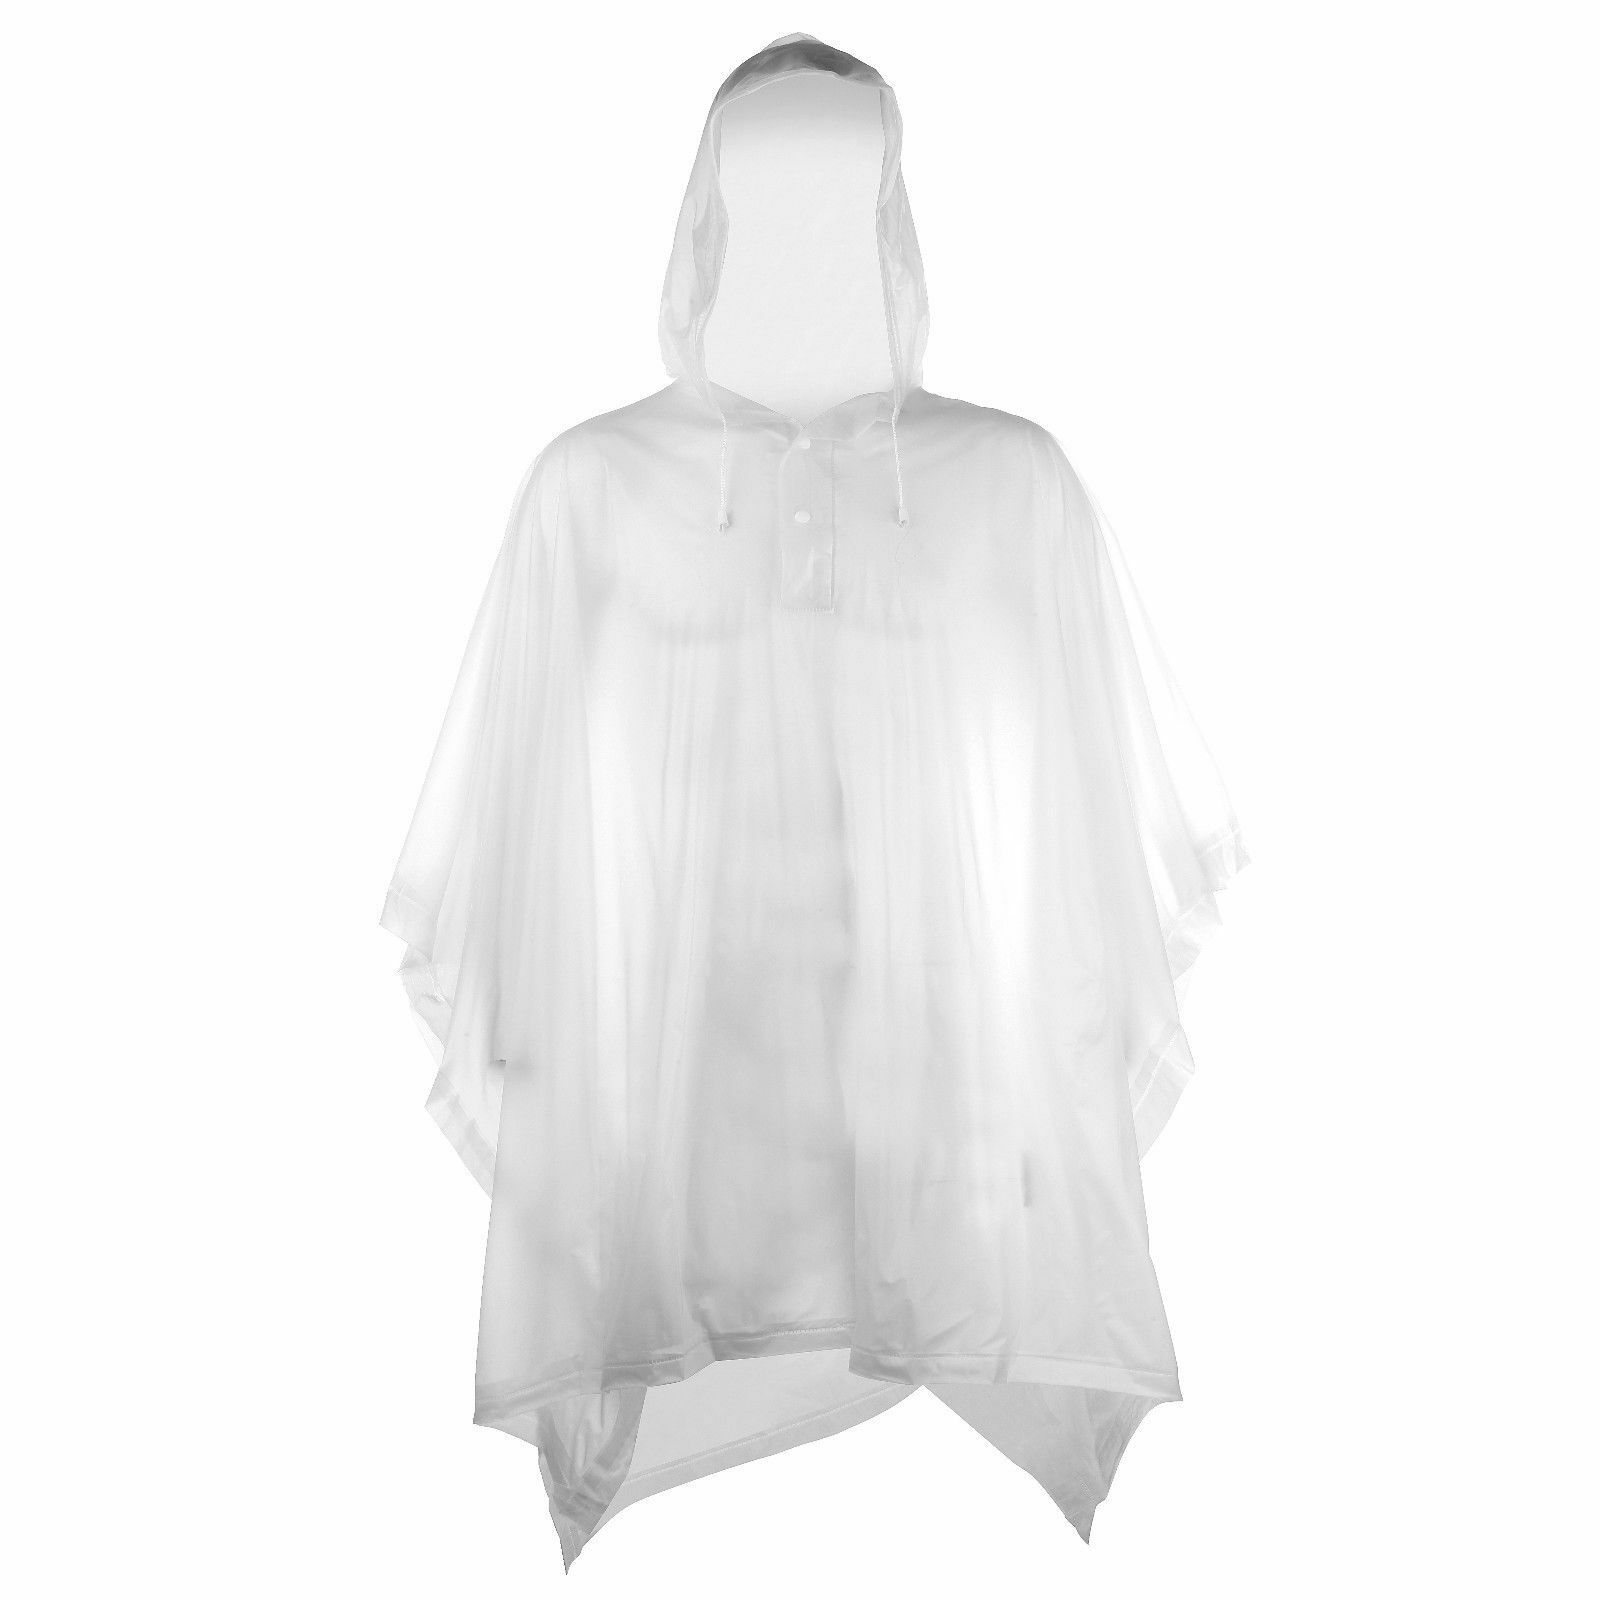 Staydry Deluxe PVC Waterproof Reusable Rain Poncho -  High Quality for Festivals  no.1 online